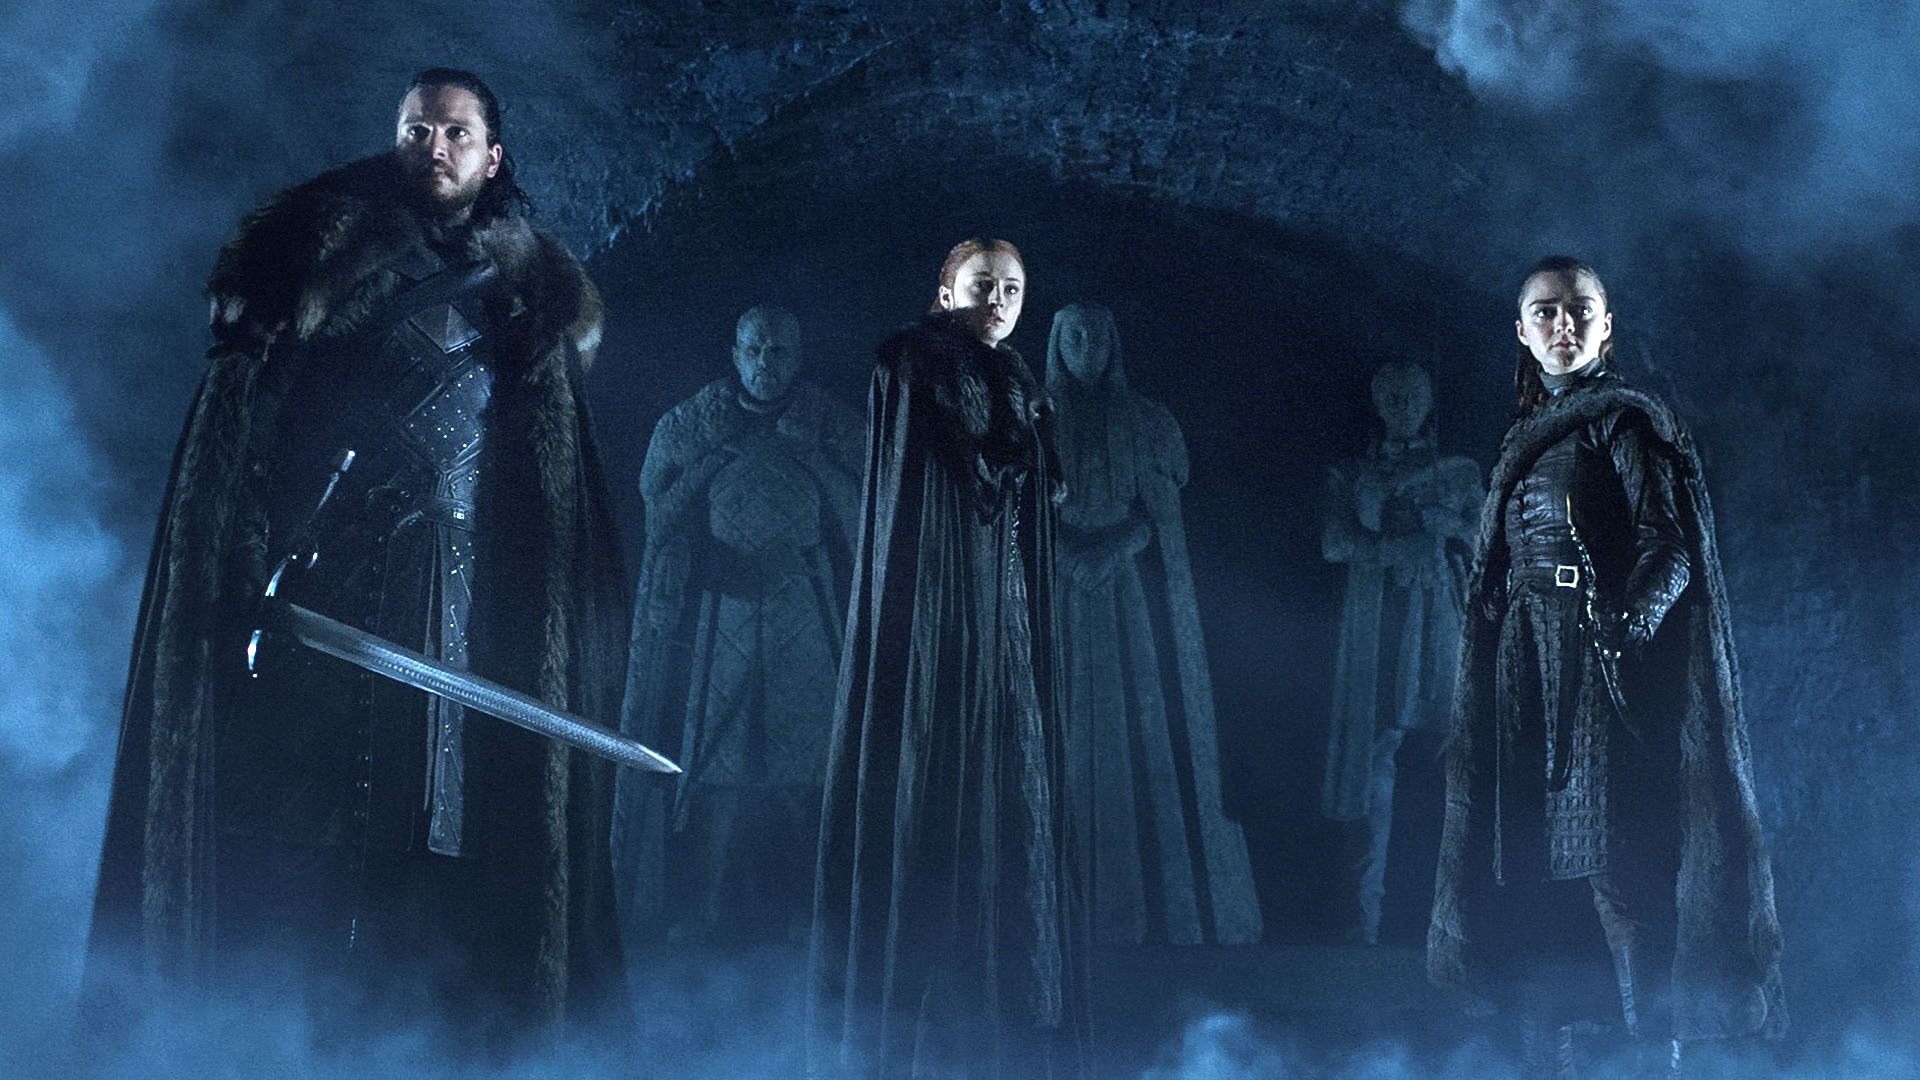 Game-of-Thrones-Season-8-Full-Wallpaper-starks